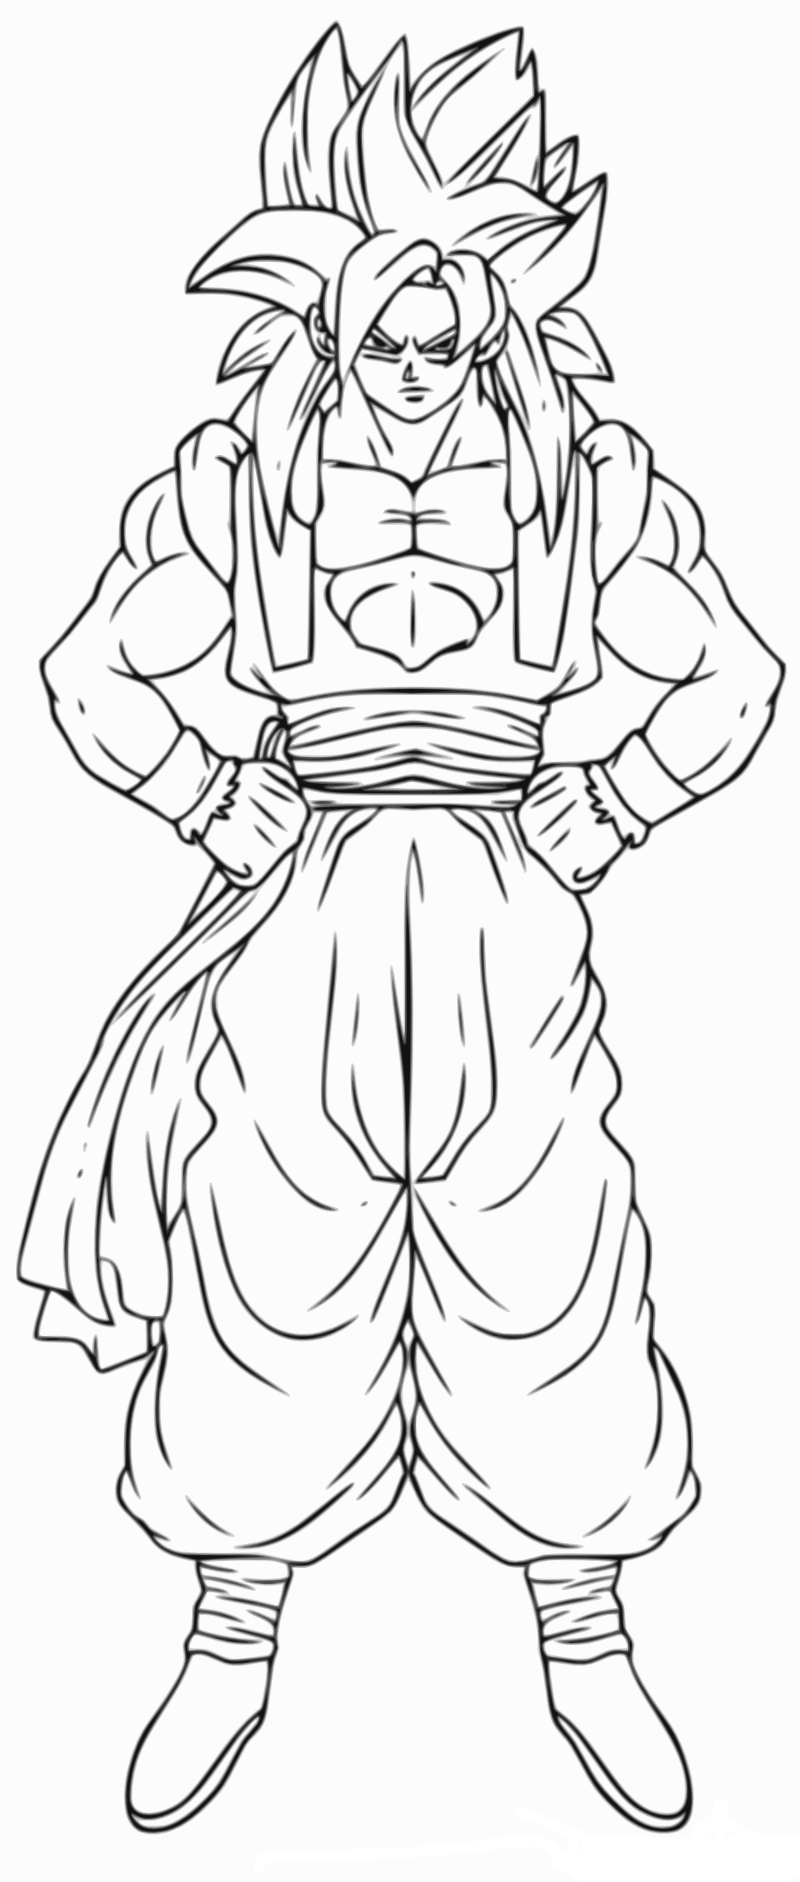 Coloriage gogeta dragon ball z imprimer et colorier - Dessin de dragon ball za imprimer ...